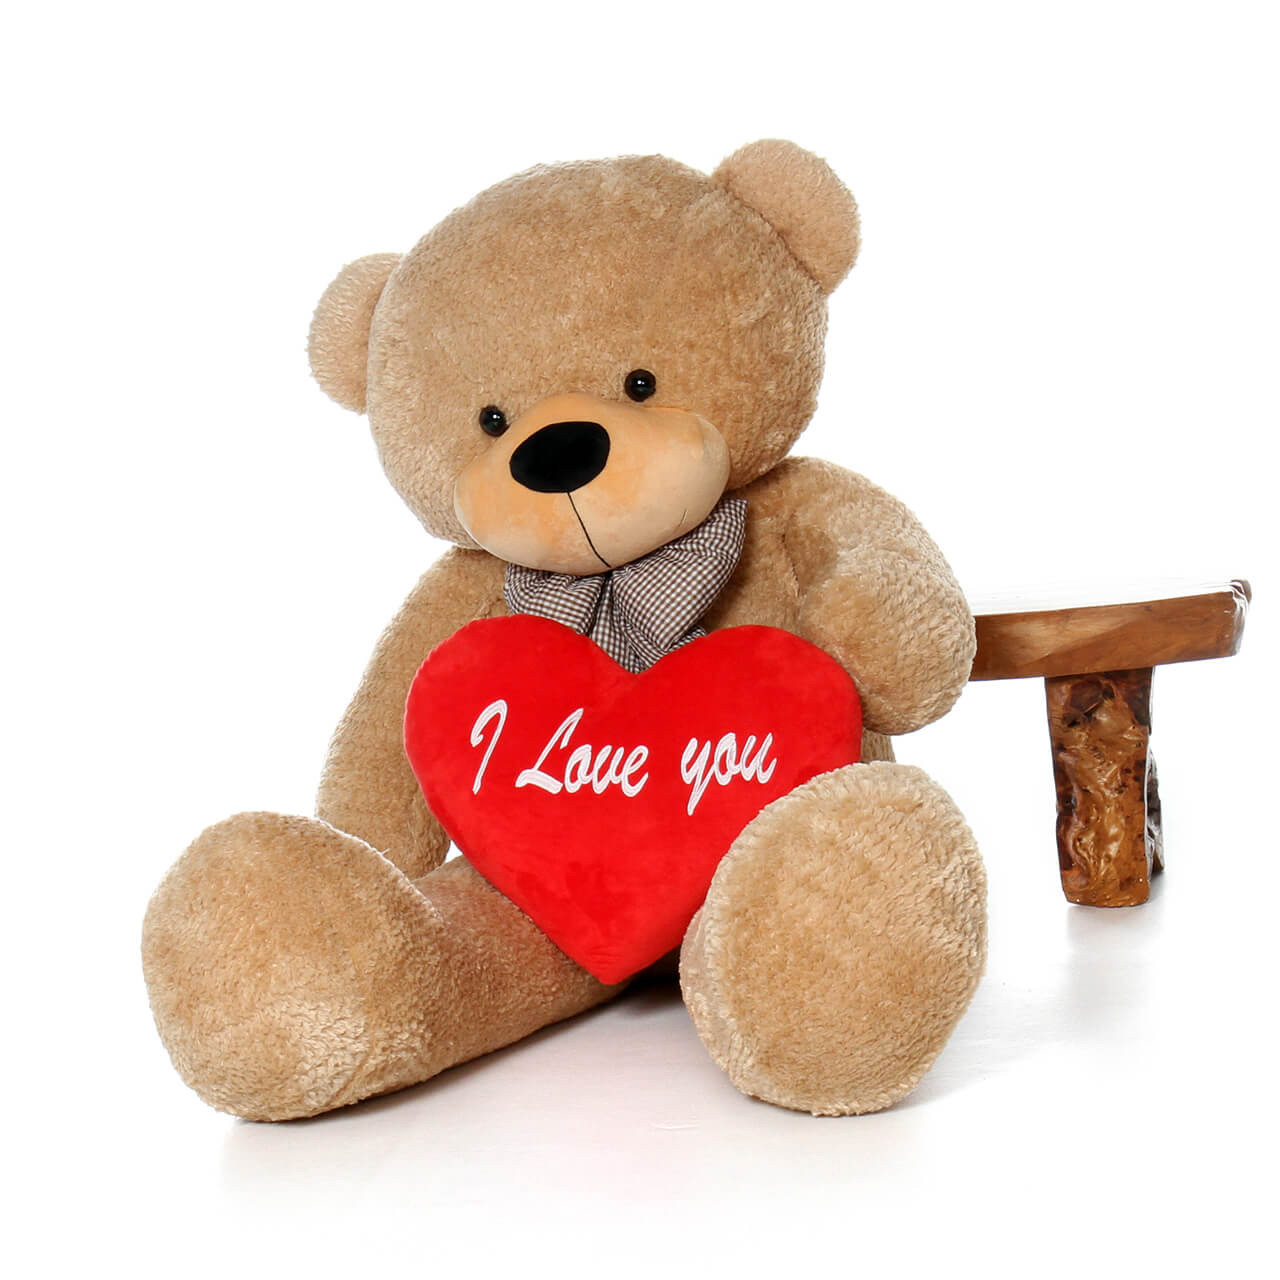 I Love You Red Plush Pillow Heart Valentine's Day Gift